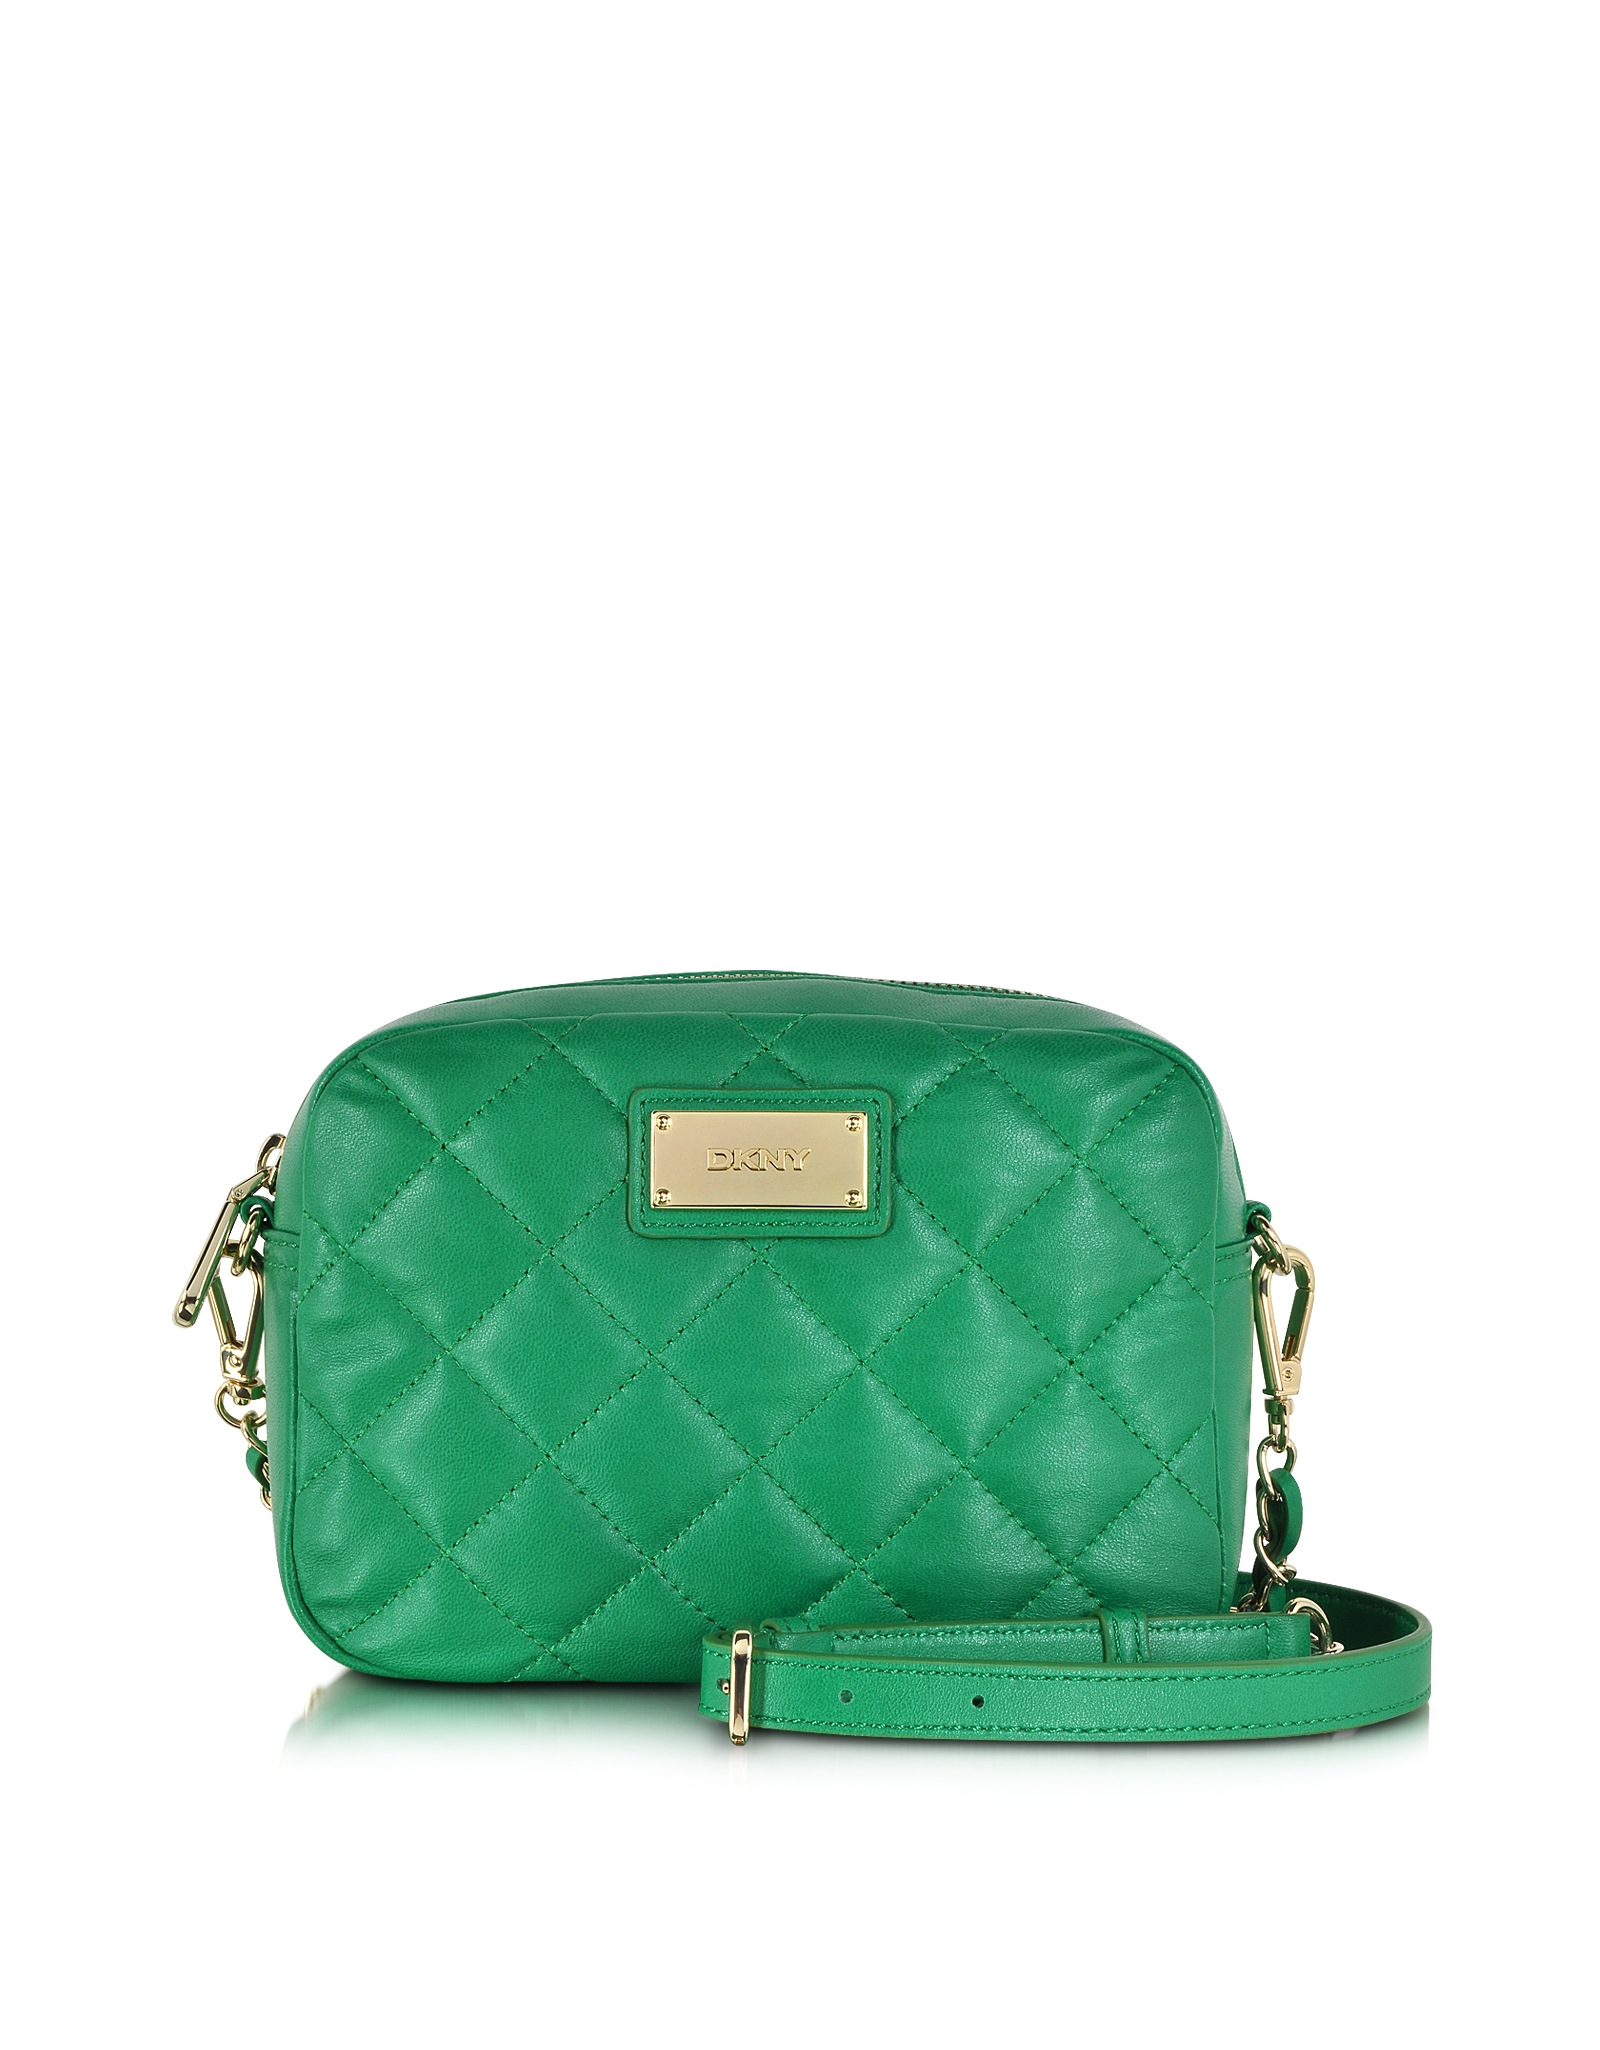 Dkny Gansevoort Quilted Leather Chain Camera Bag in Green | Lyst